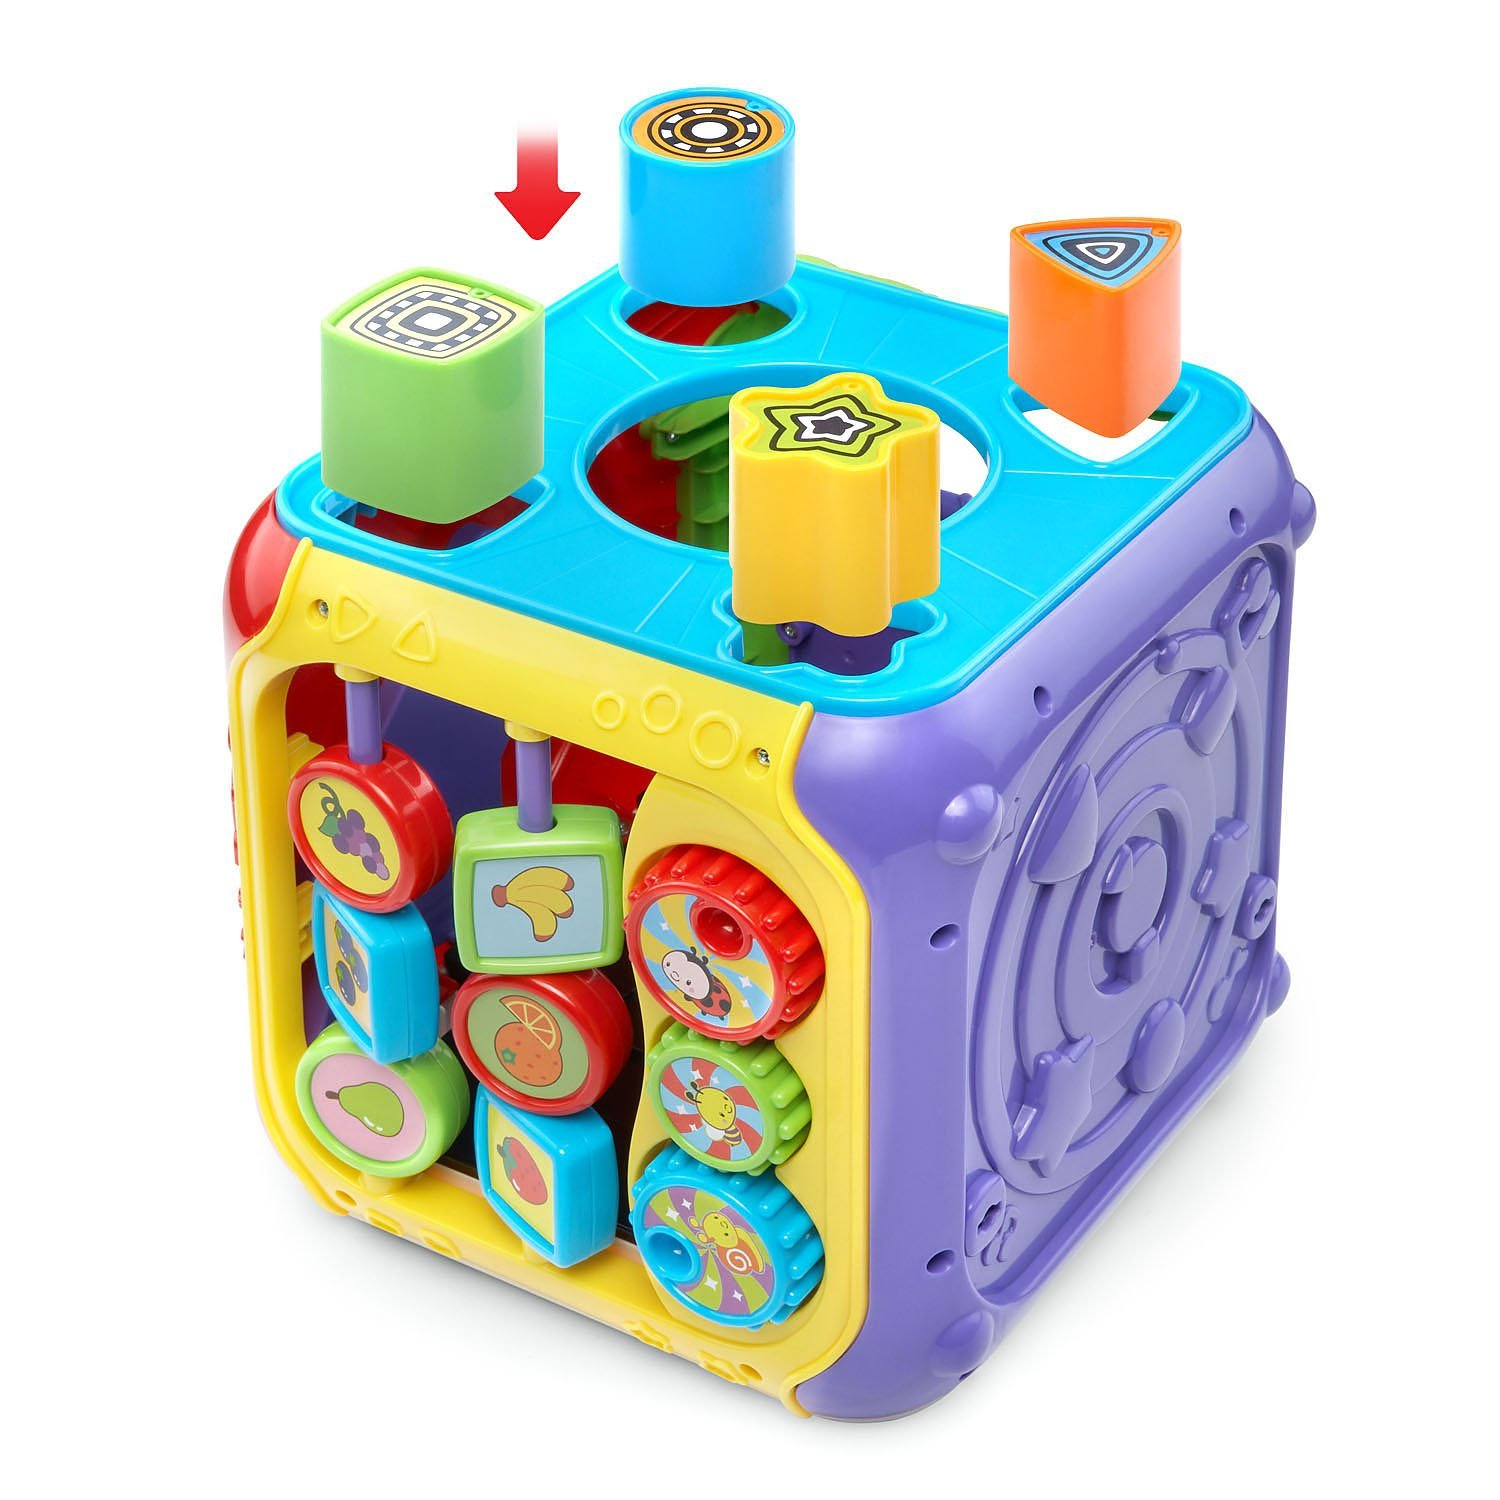 VTech Sort and Discover Activity Cube, Red by VTech (Image #6)